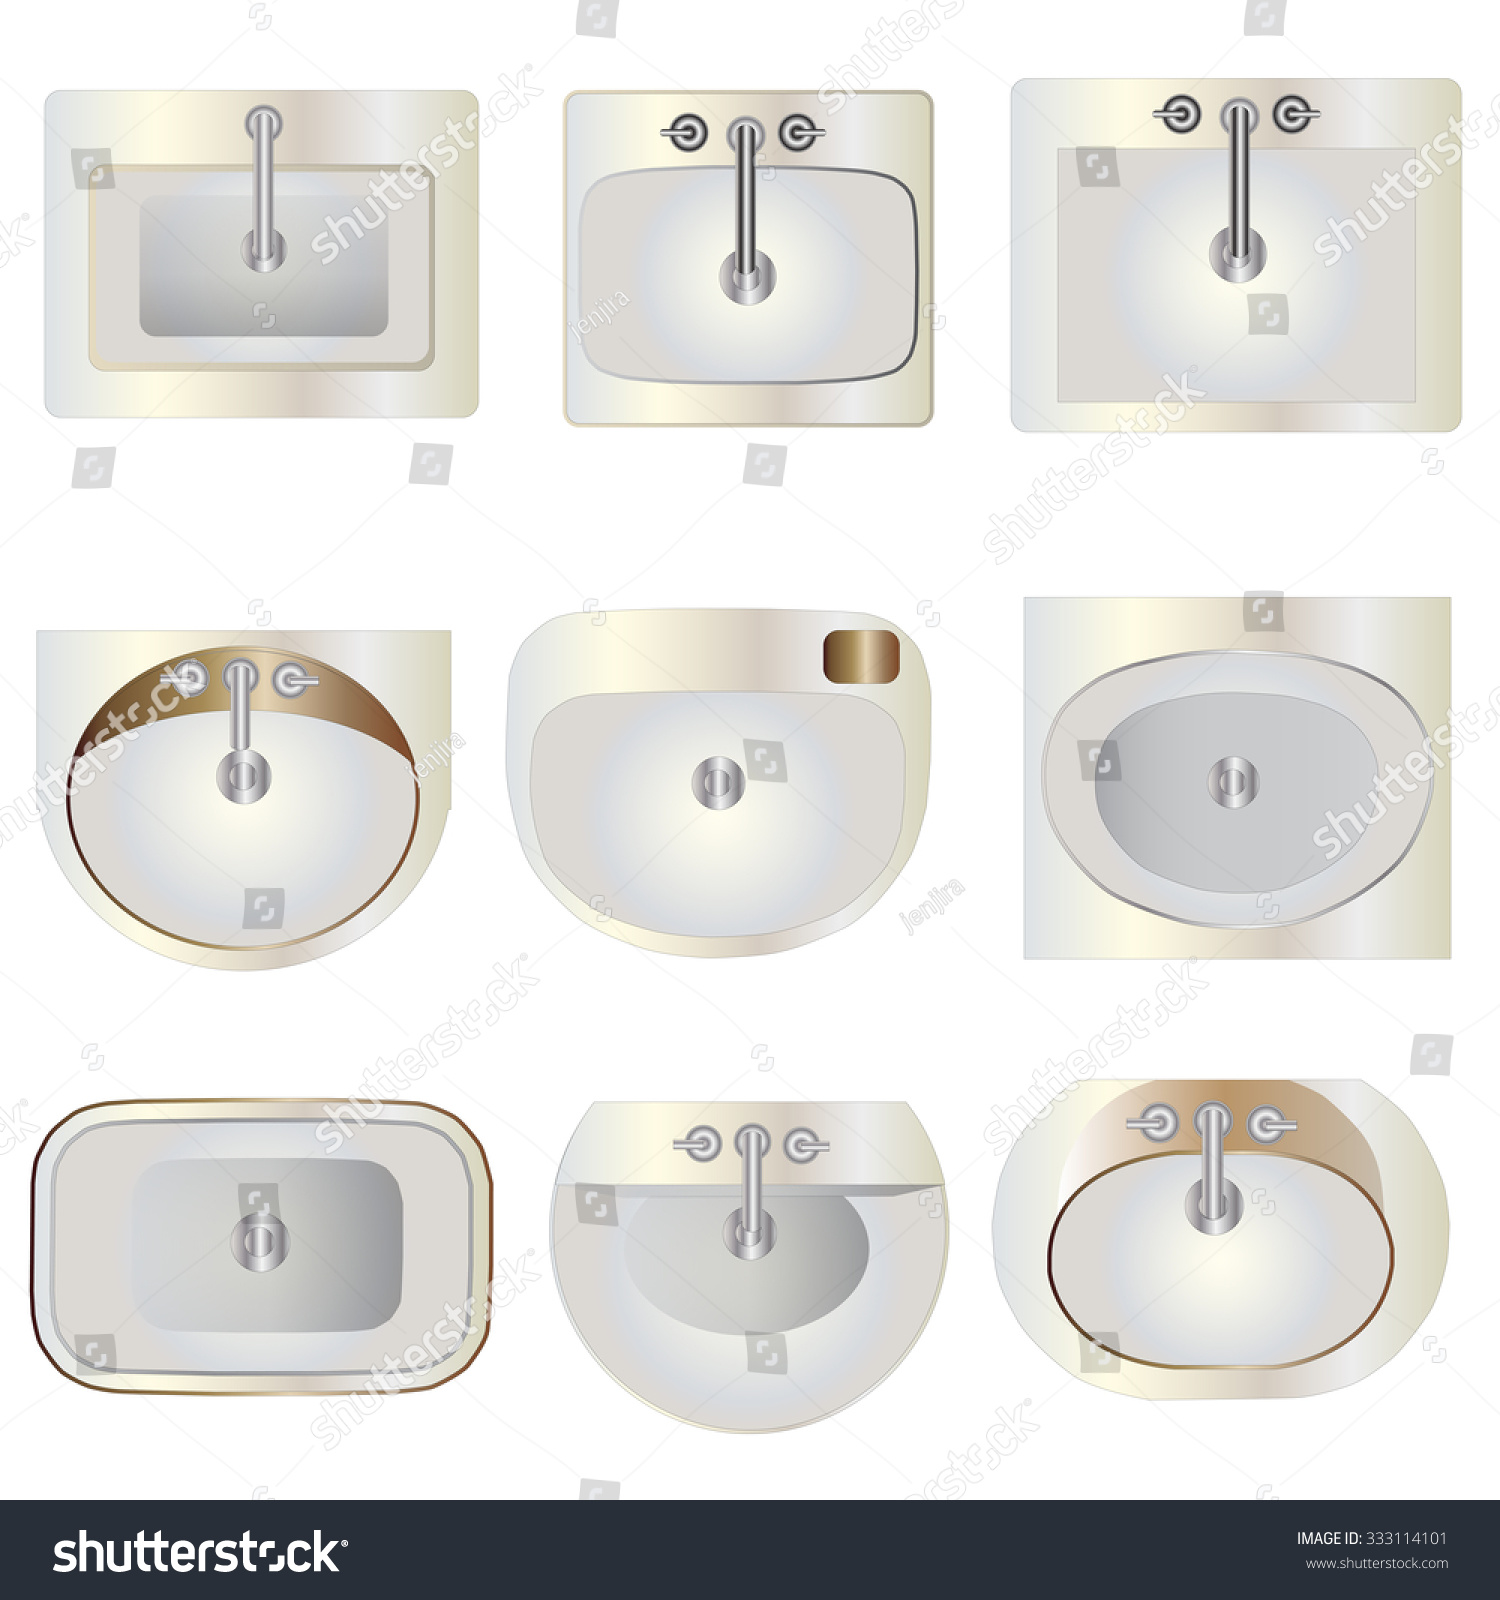 Bathroom sink top view - Bathroom Wash Basin Set 9 Top View For Interior Vector Illustration